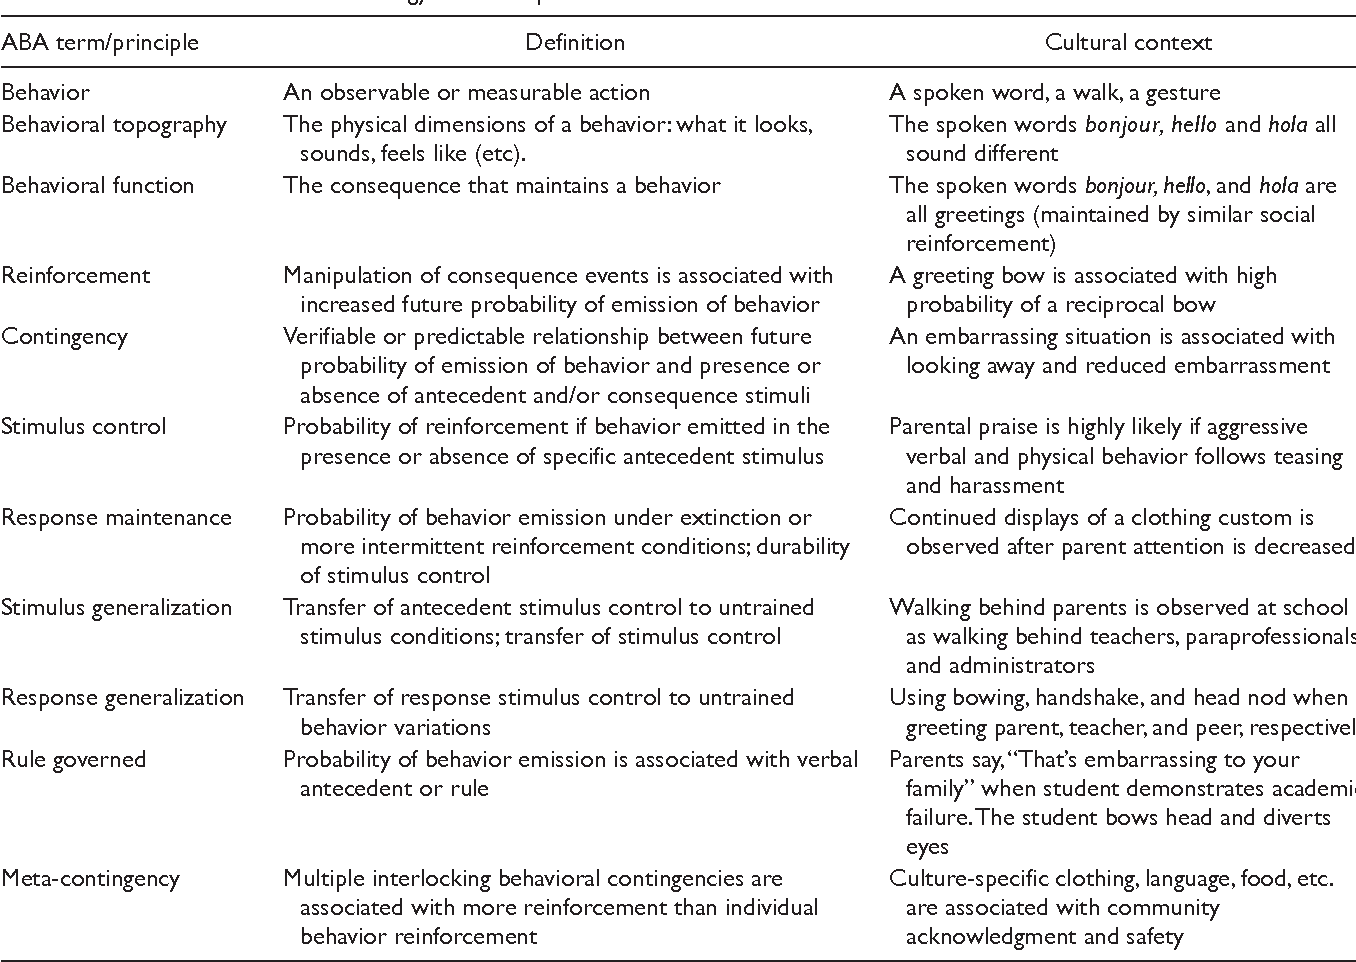 Table 2 from A Contextual Consideration of Culture and